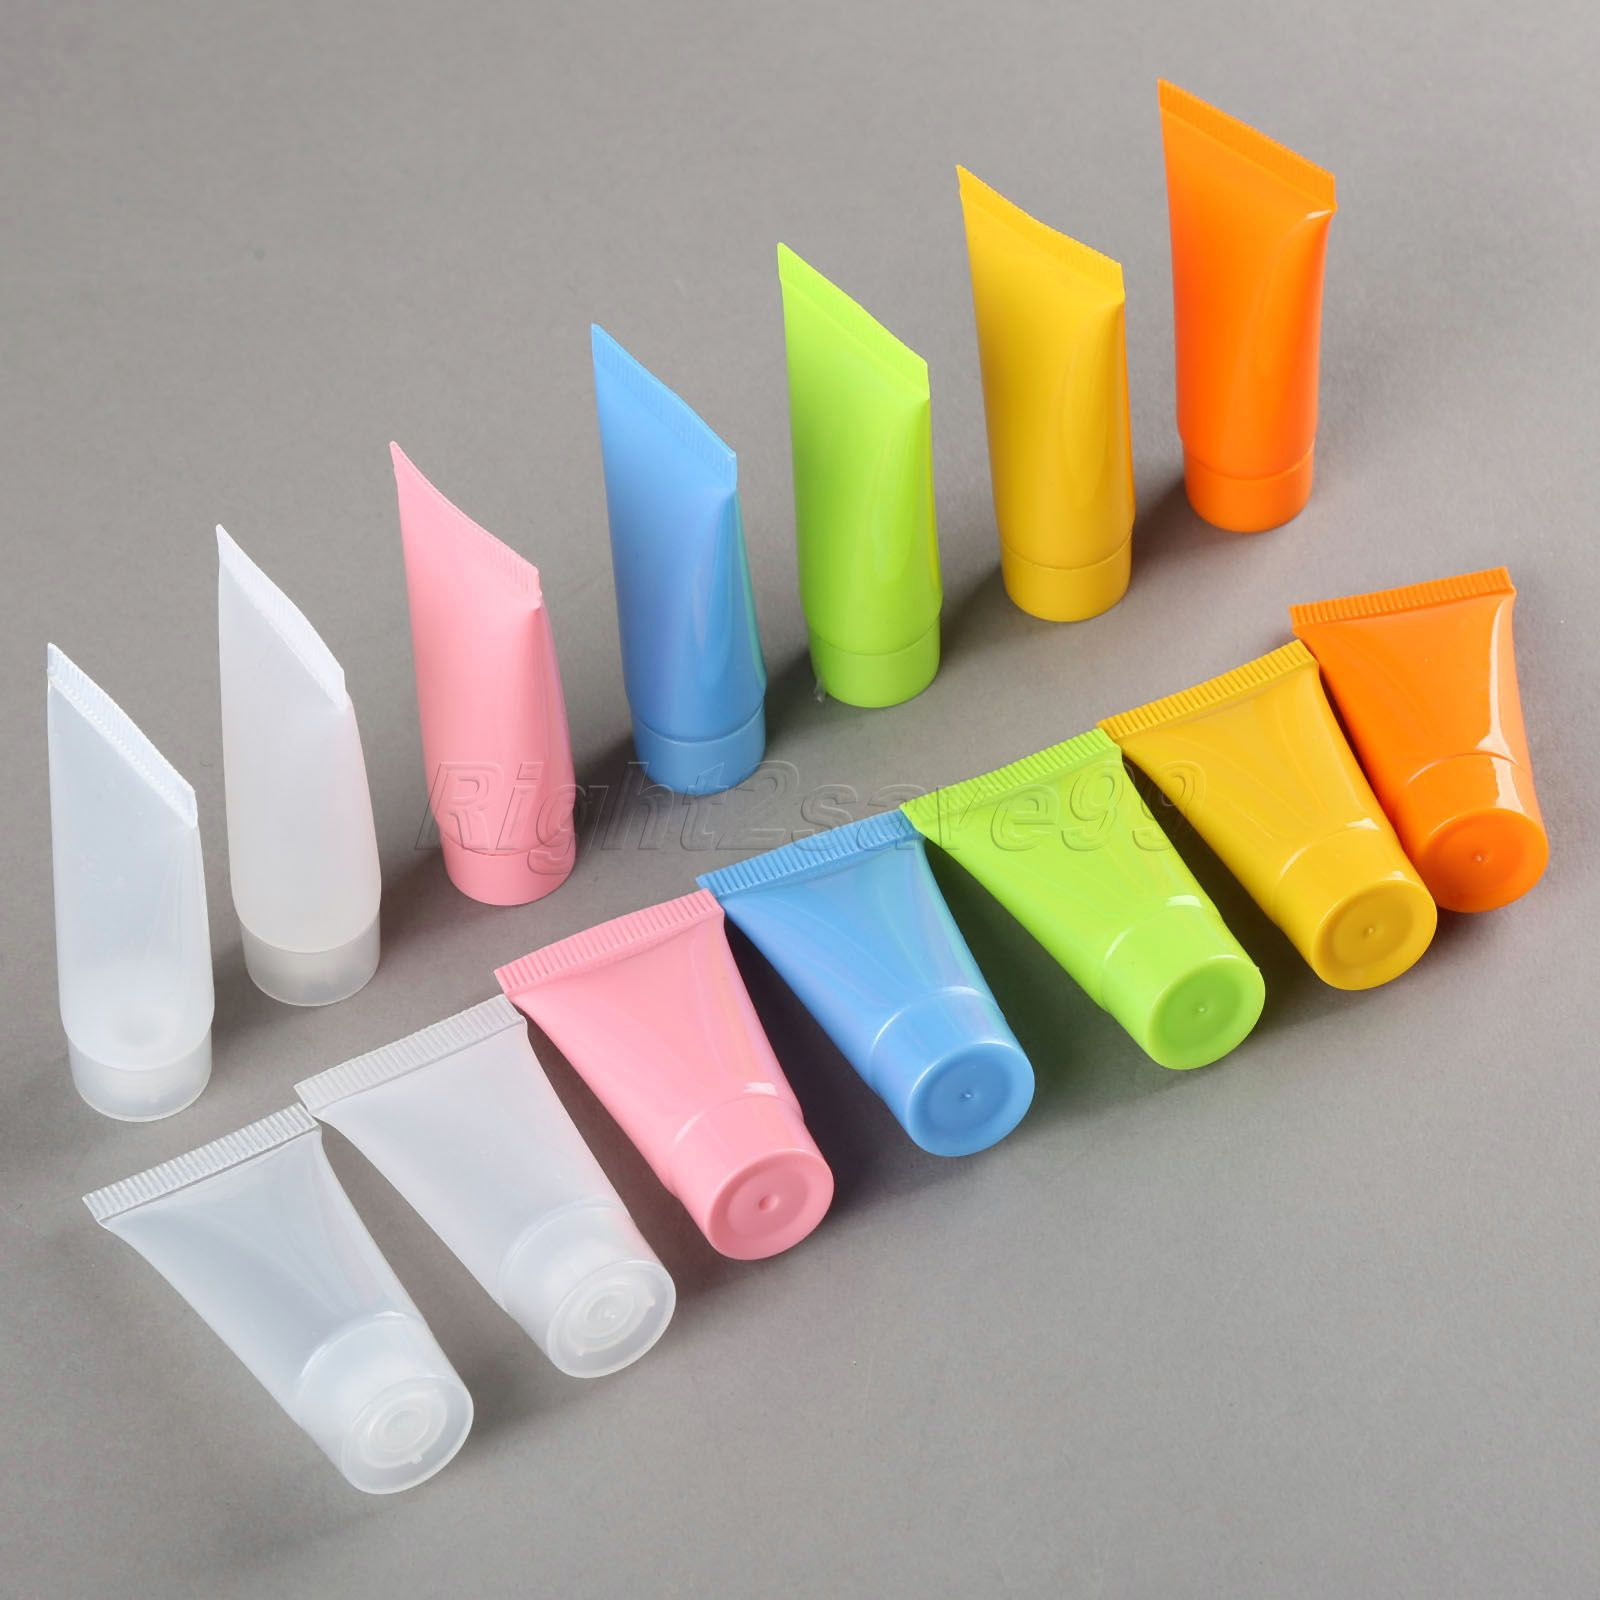 5pcs Cosmetic Soft Tube 5ml/10ml Plastic Lotion Containers Empty Makeup Squeeze Tube Refilable Bottles Emulsion Cream Packaging